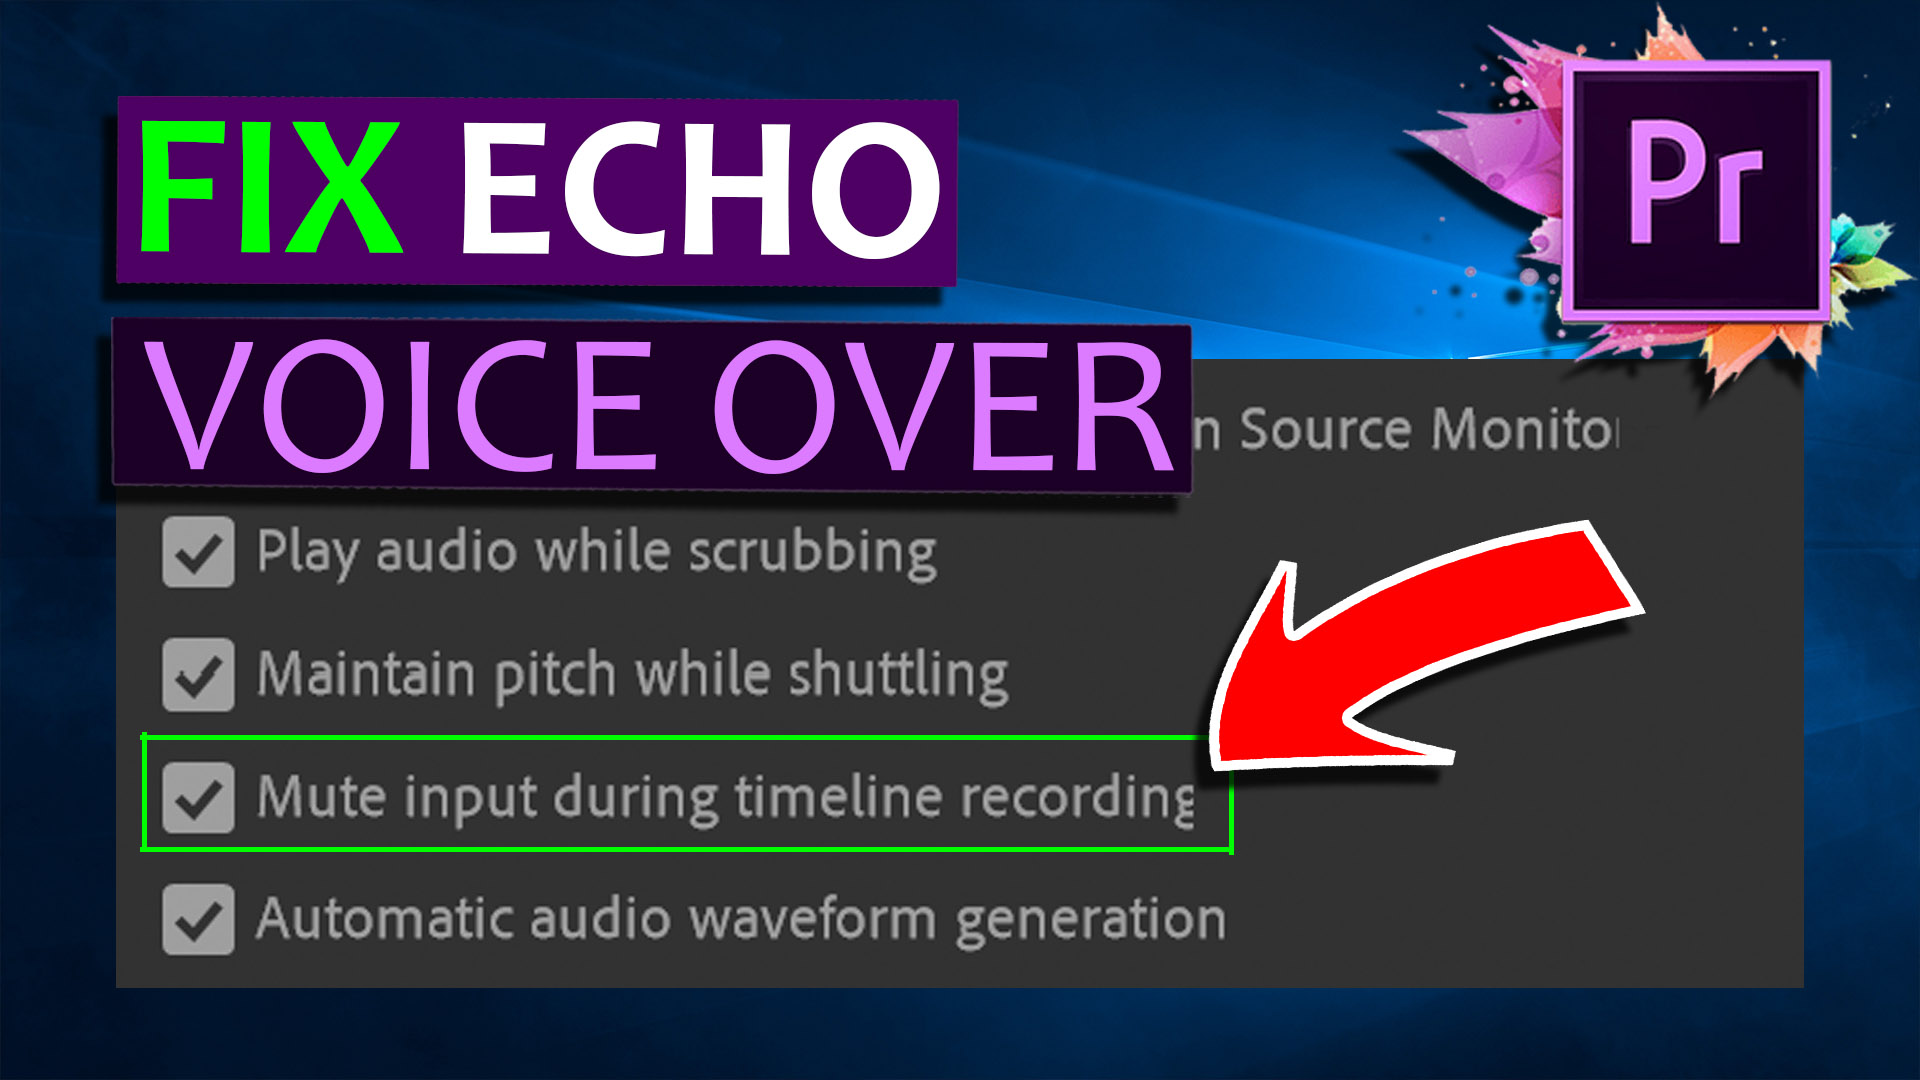 FIX Premiere Pro Voice Over Echo - Cover